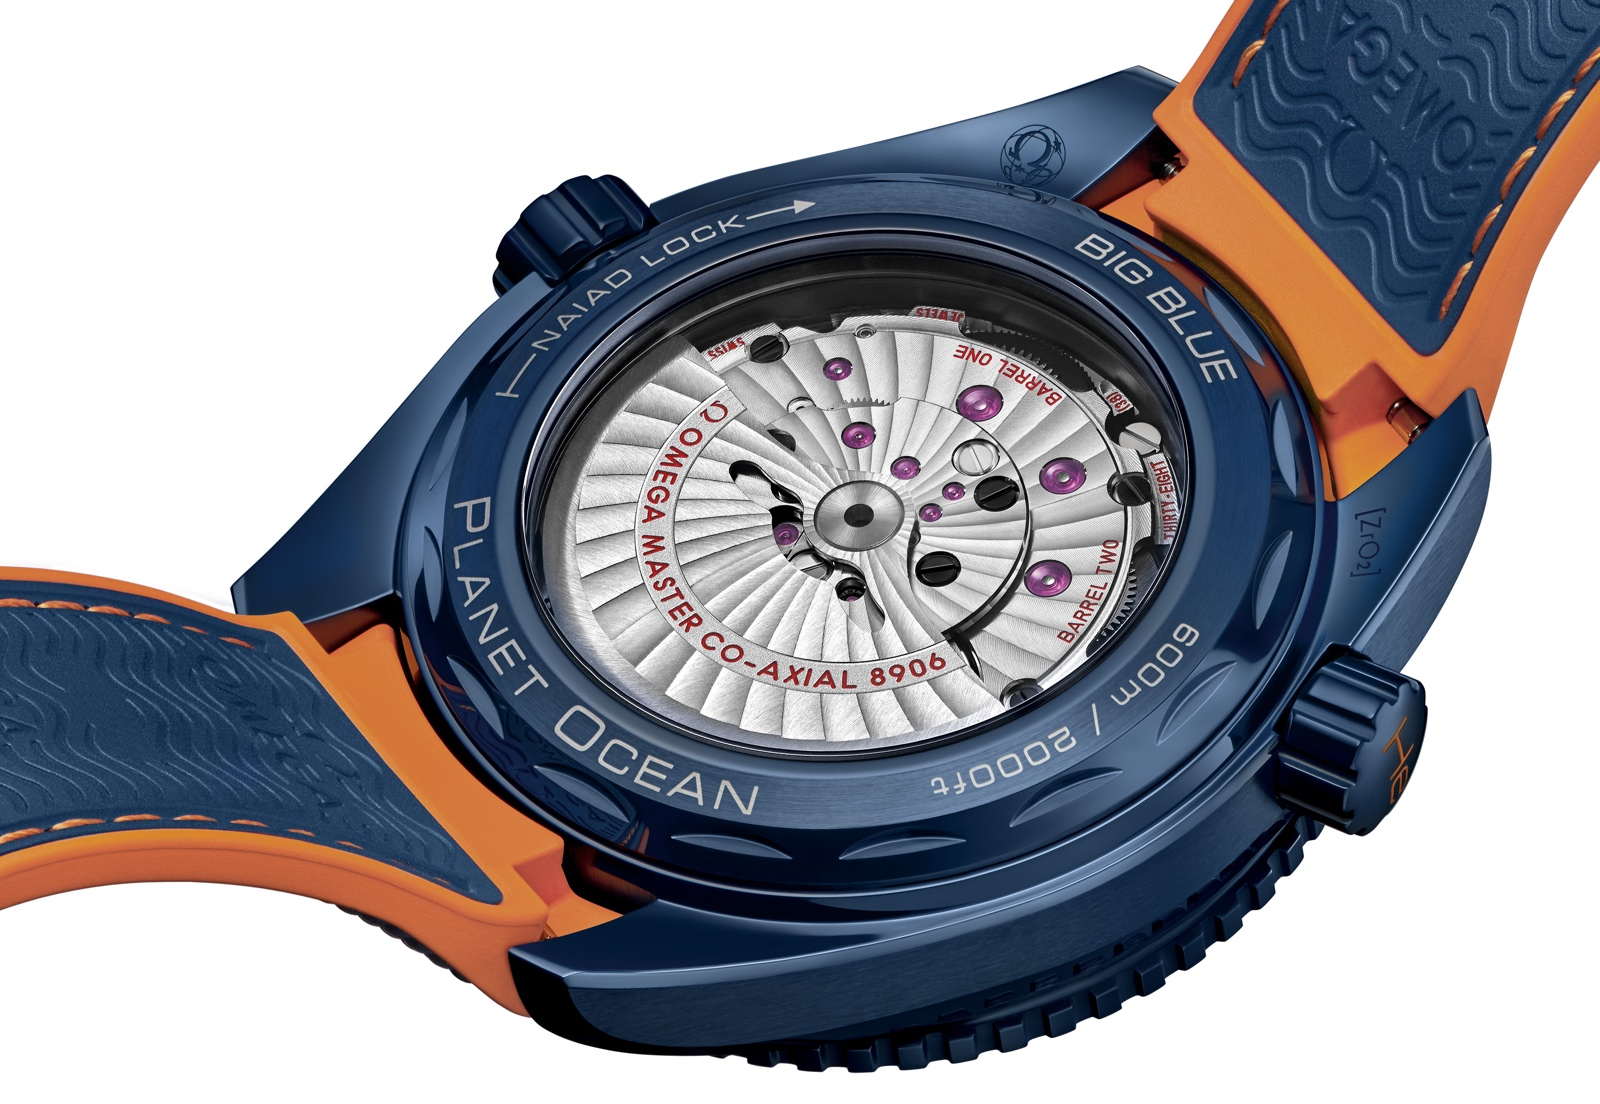 Omega Seamaster Planet Ocean Big Blue Back